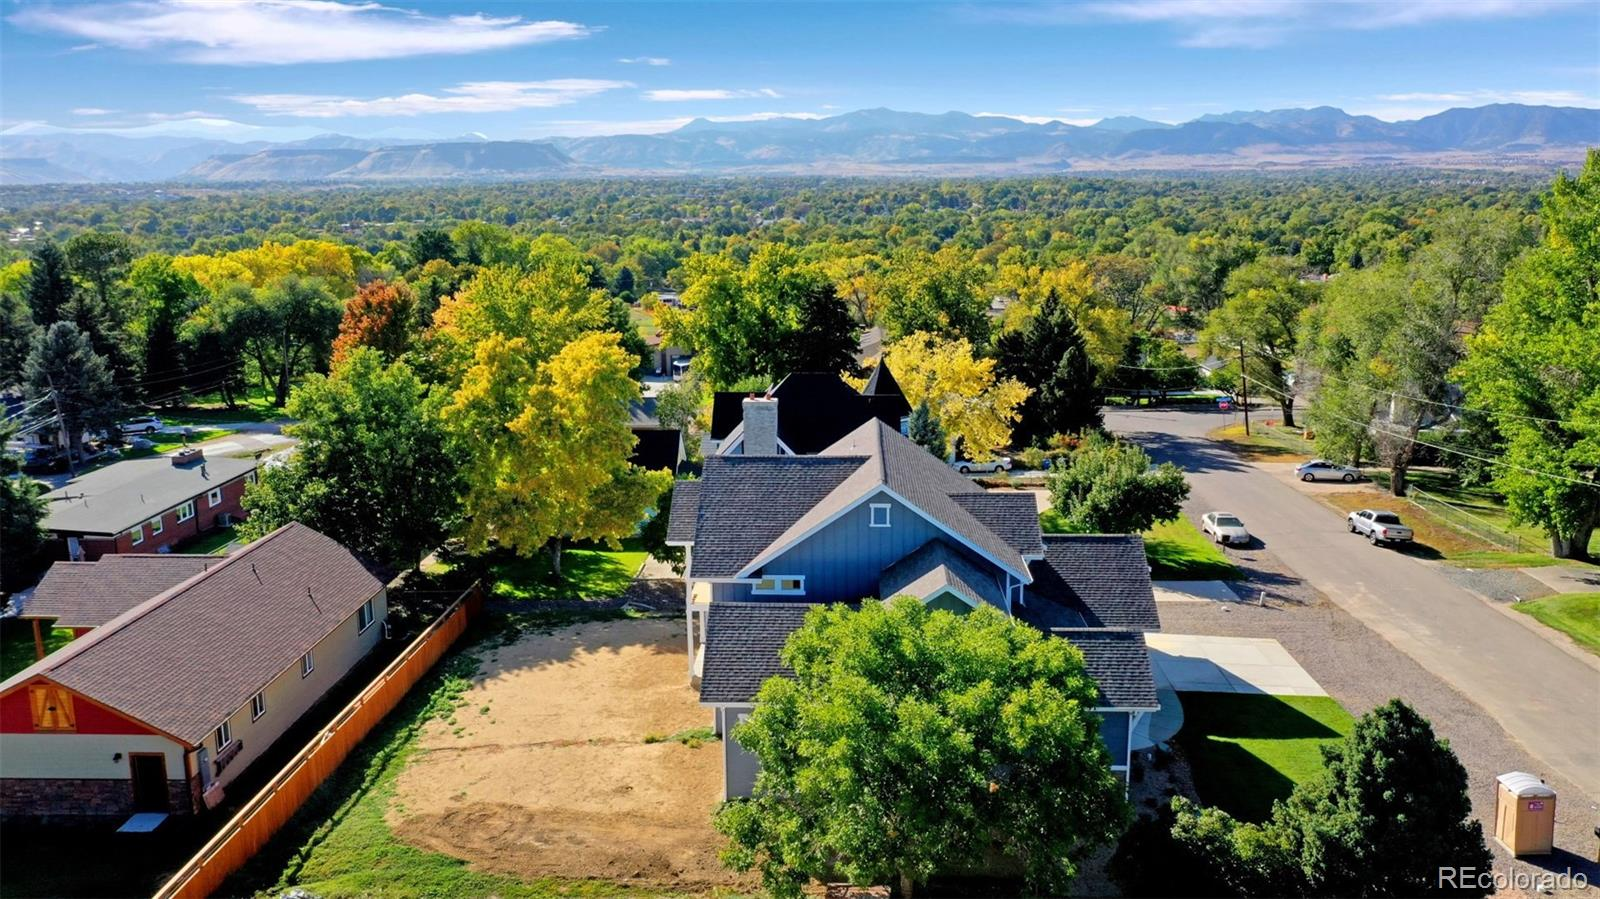 MLS# 6218447 - 15 - 9080 W 64th Place, Arvada, CO 80004